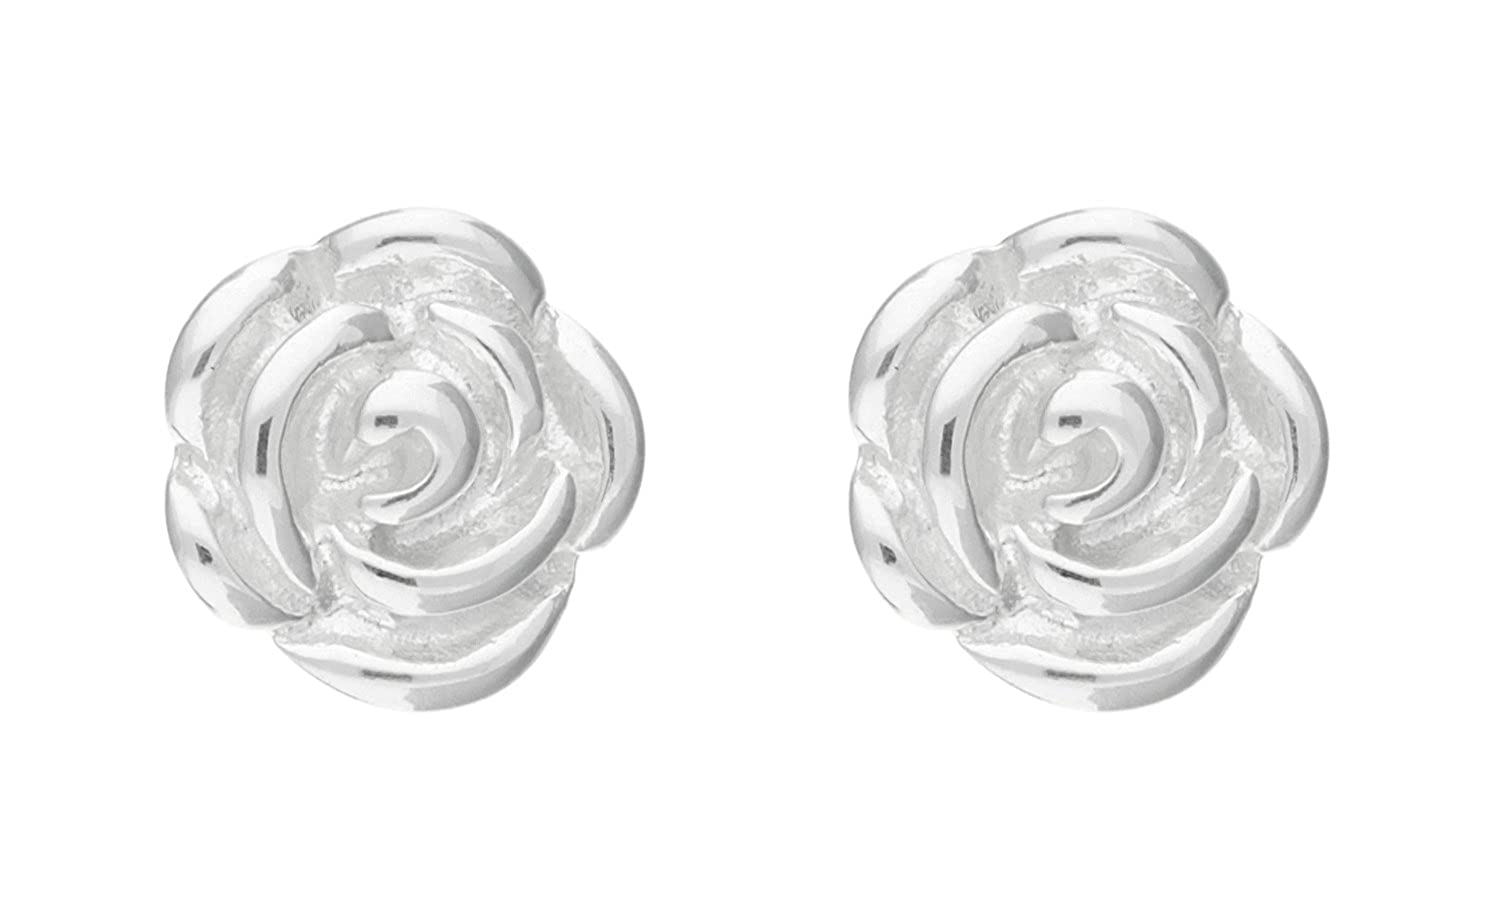 Adara Rose Stud Sterling Silver Earrings 0fGHpGW